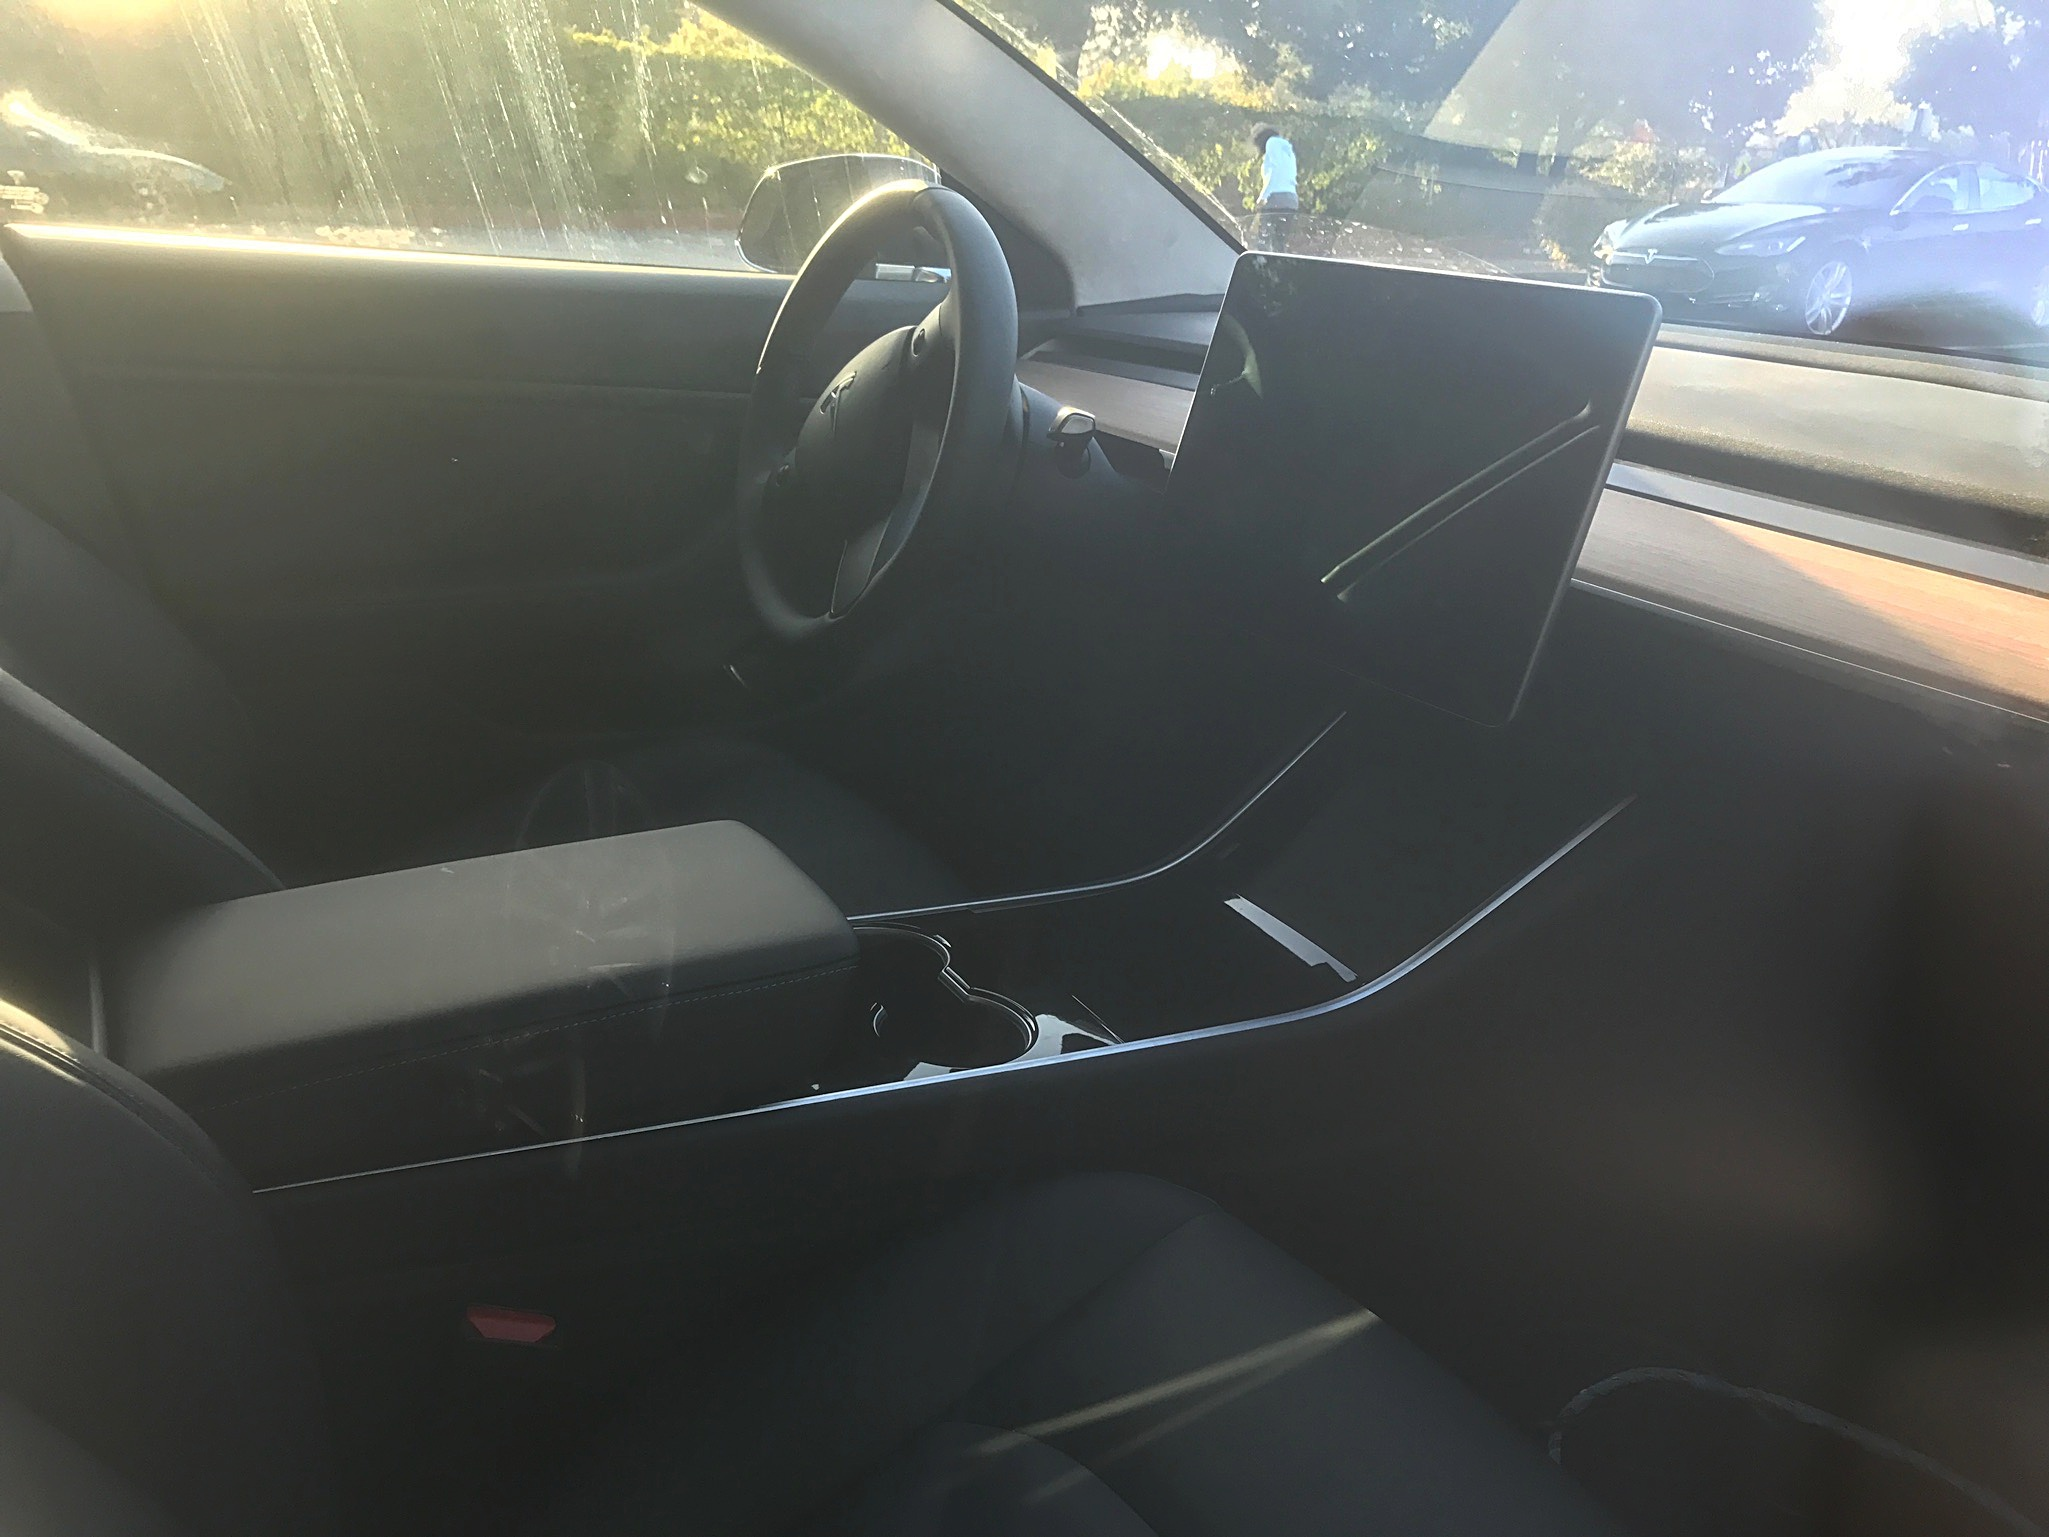 Tesla Model 3 Center Console Side 2 Teslarati